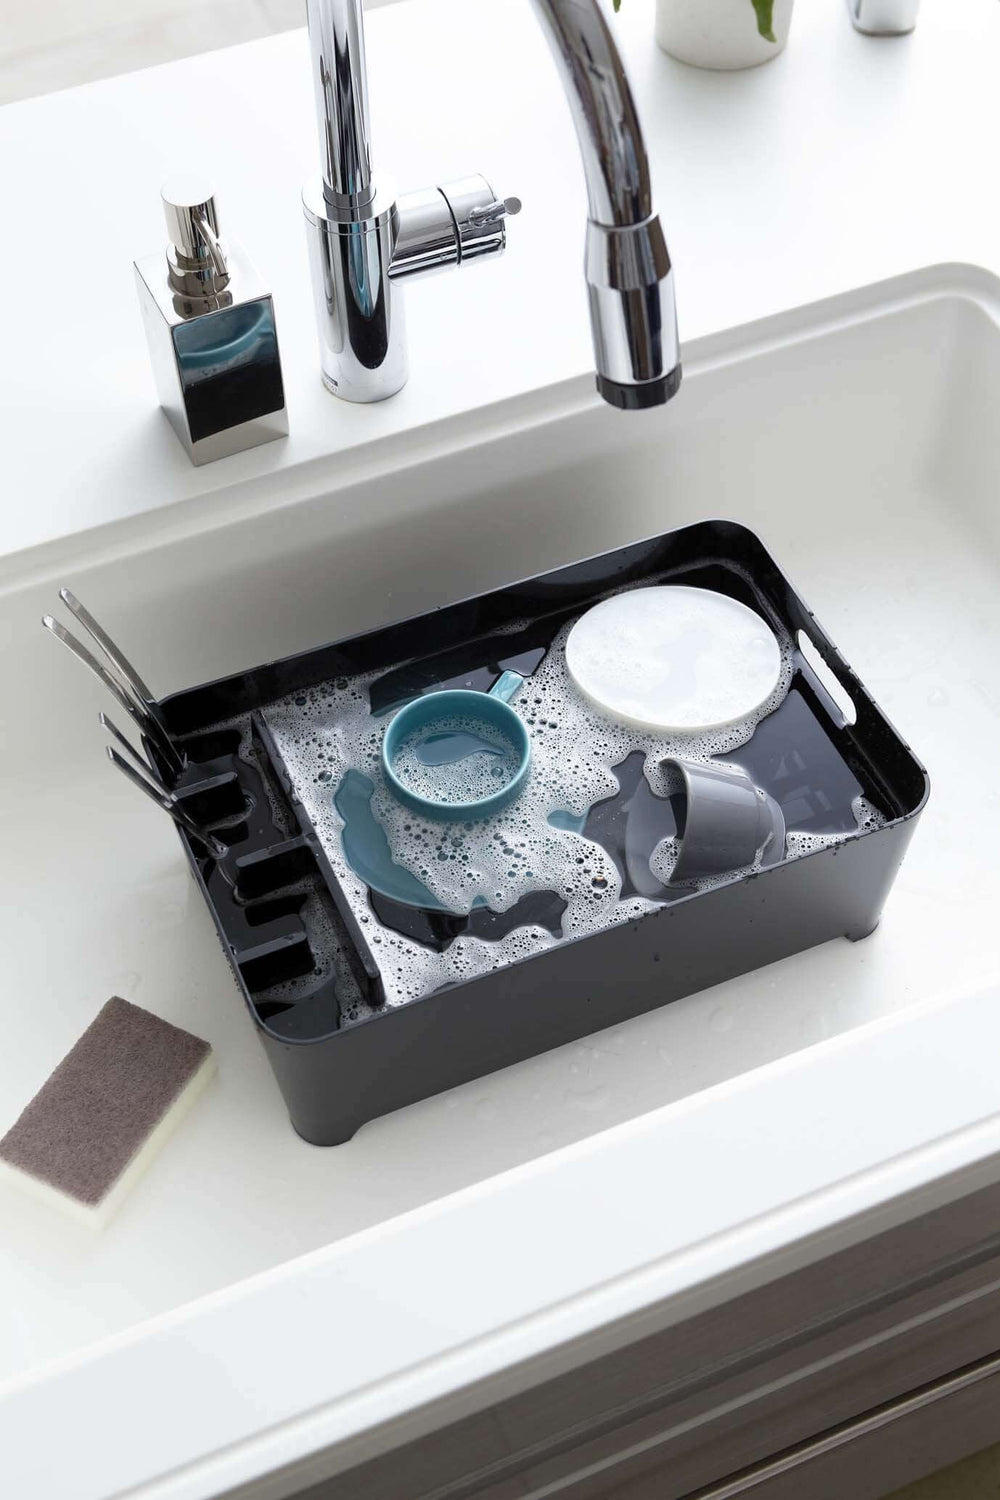 Yamazaki's black dish drainer with compartment filled with dishes and water in the sink